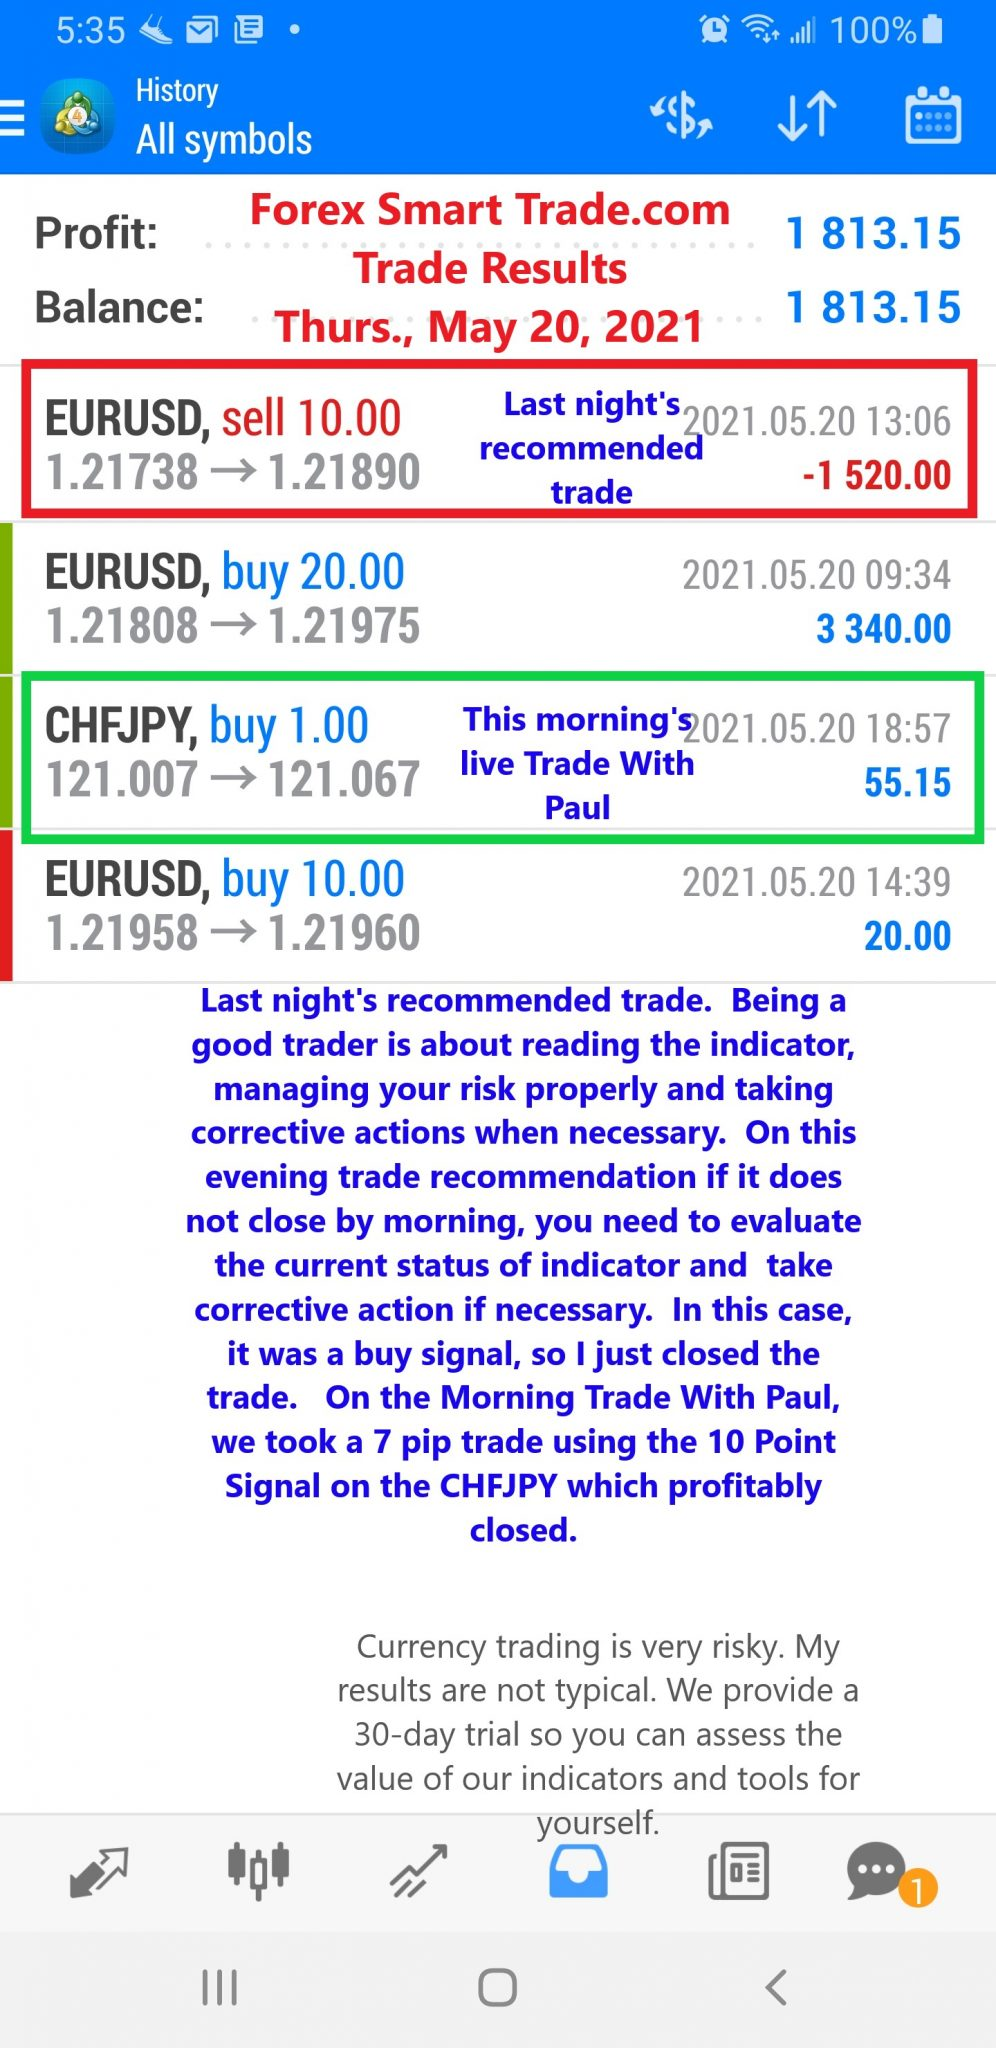 Trade Results Thursday, May 20, 2021 - Forex Smart Trade